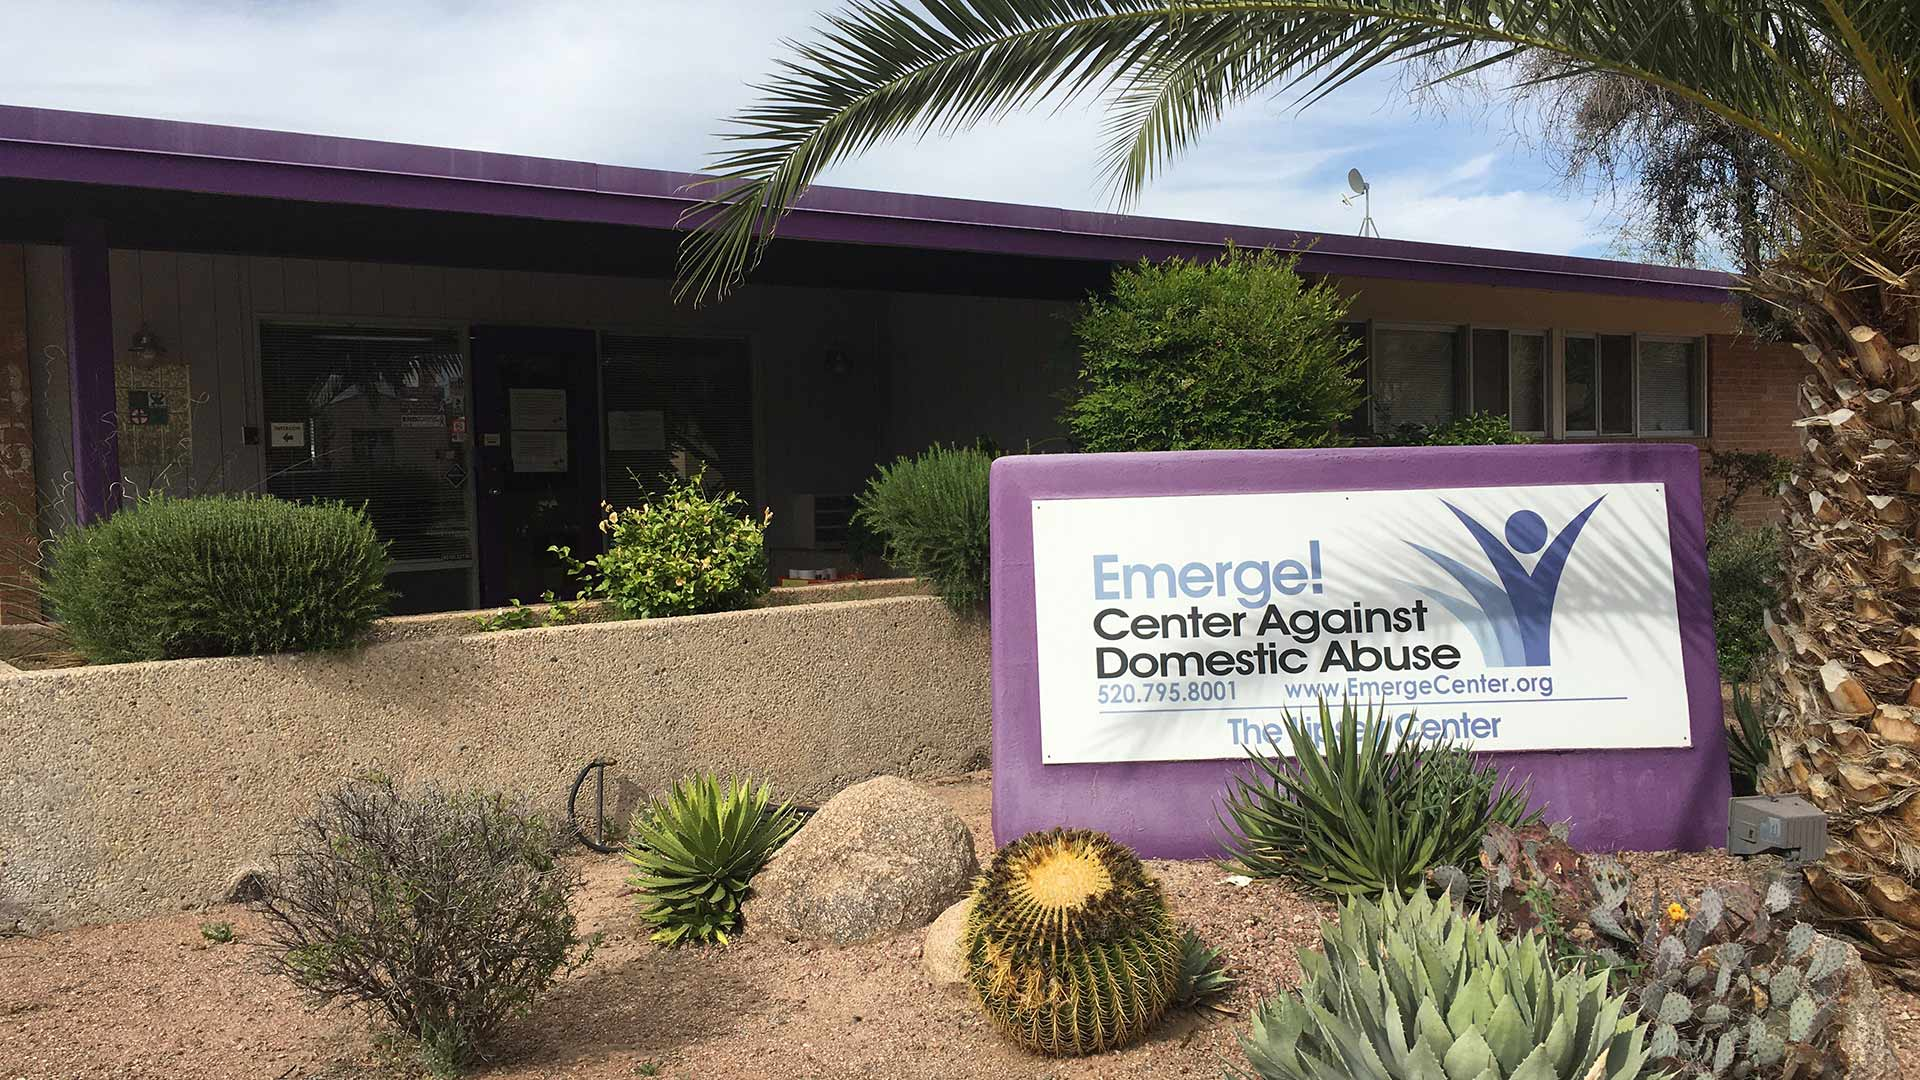 The administration building for Emerge! Center Against Domestic Abuse.